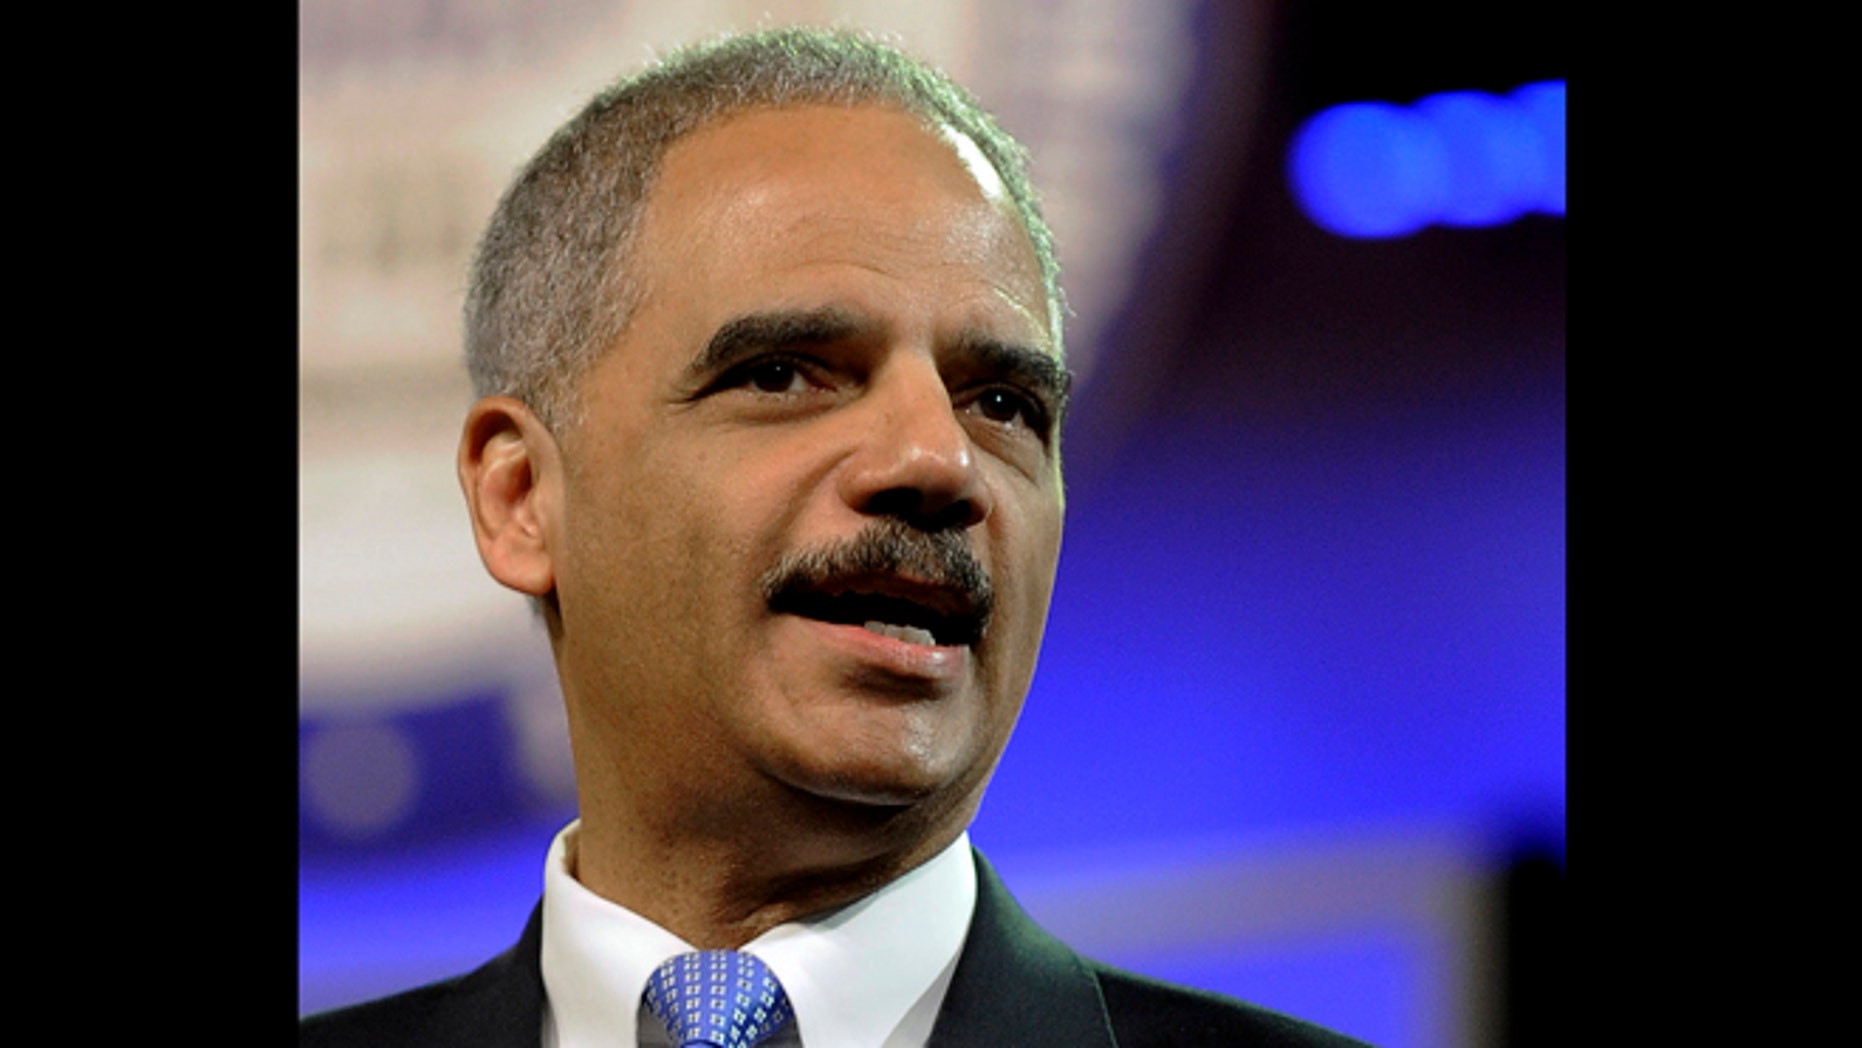 July 10, 2012: File photo, Attorney General Eric Holder speaks in Houston. Holder is cutting short an overseas trip and will return to Washington immediately to manage a criminal investigation into the deaths of the four people who died in an attack on the U.S. Consulate in Benghazi, Libya.